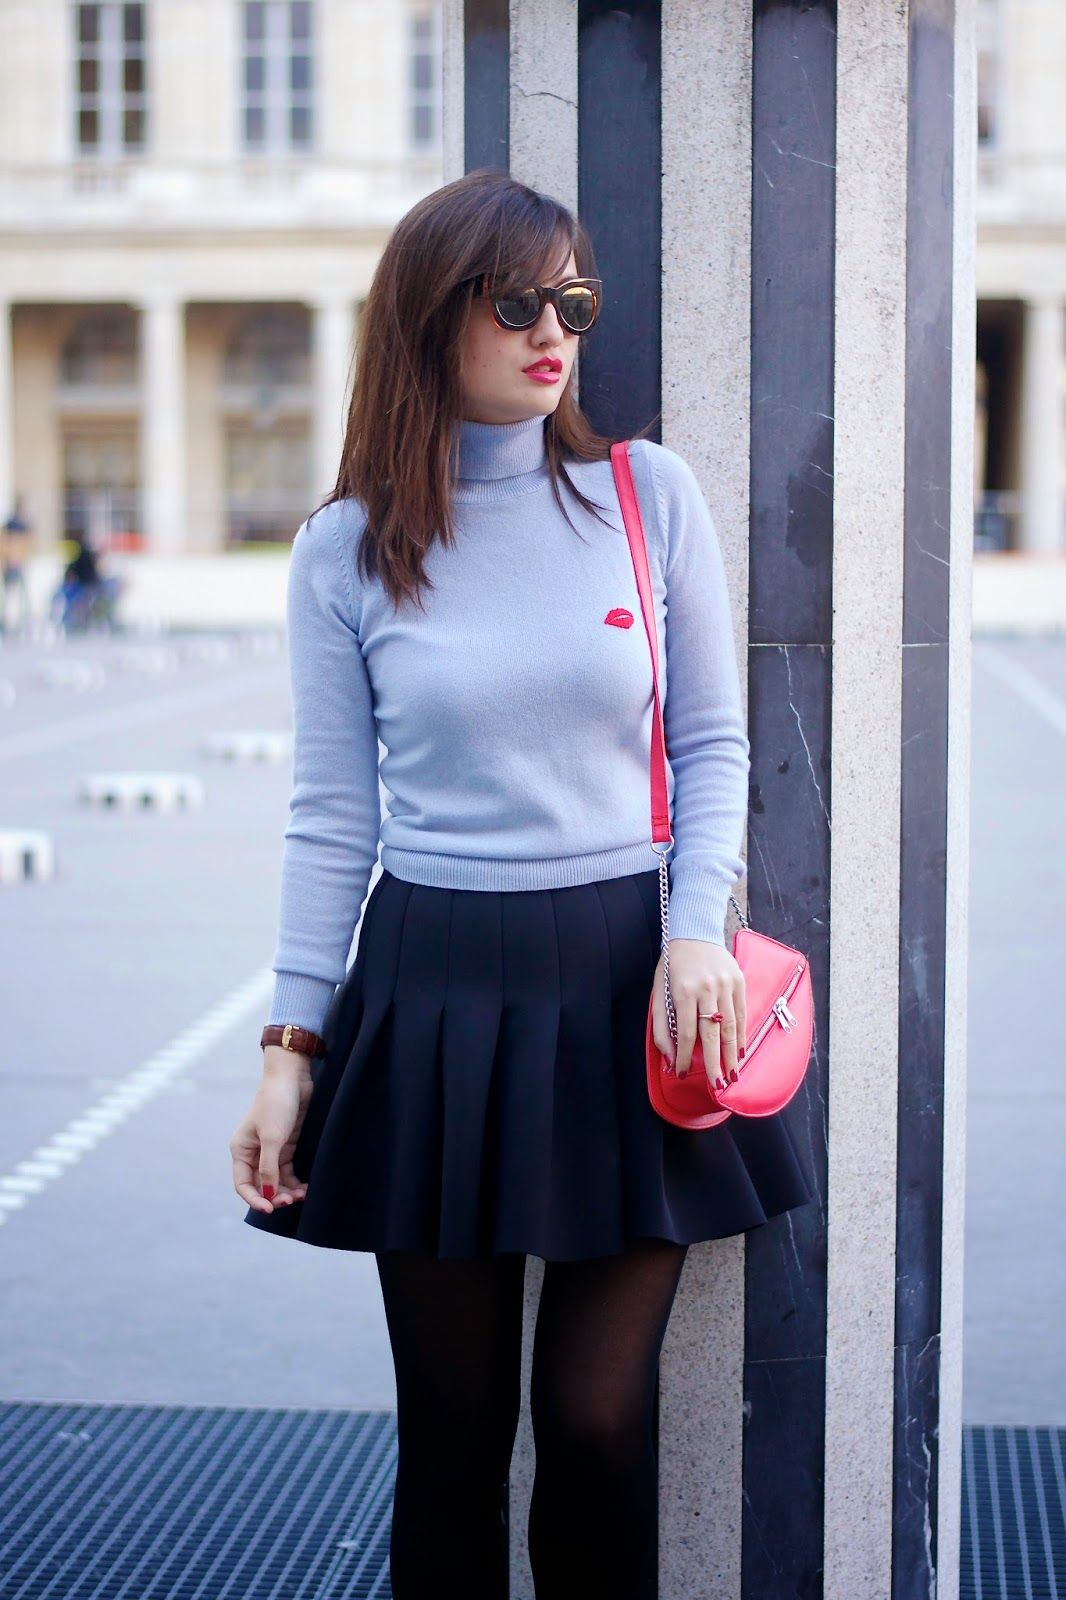 Turtle neck styling